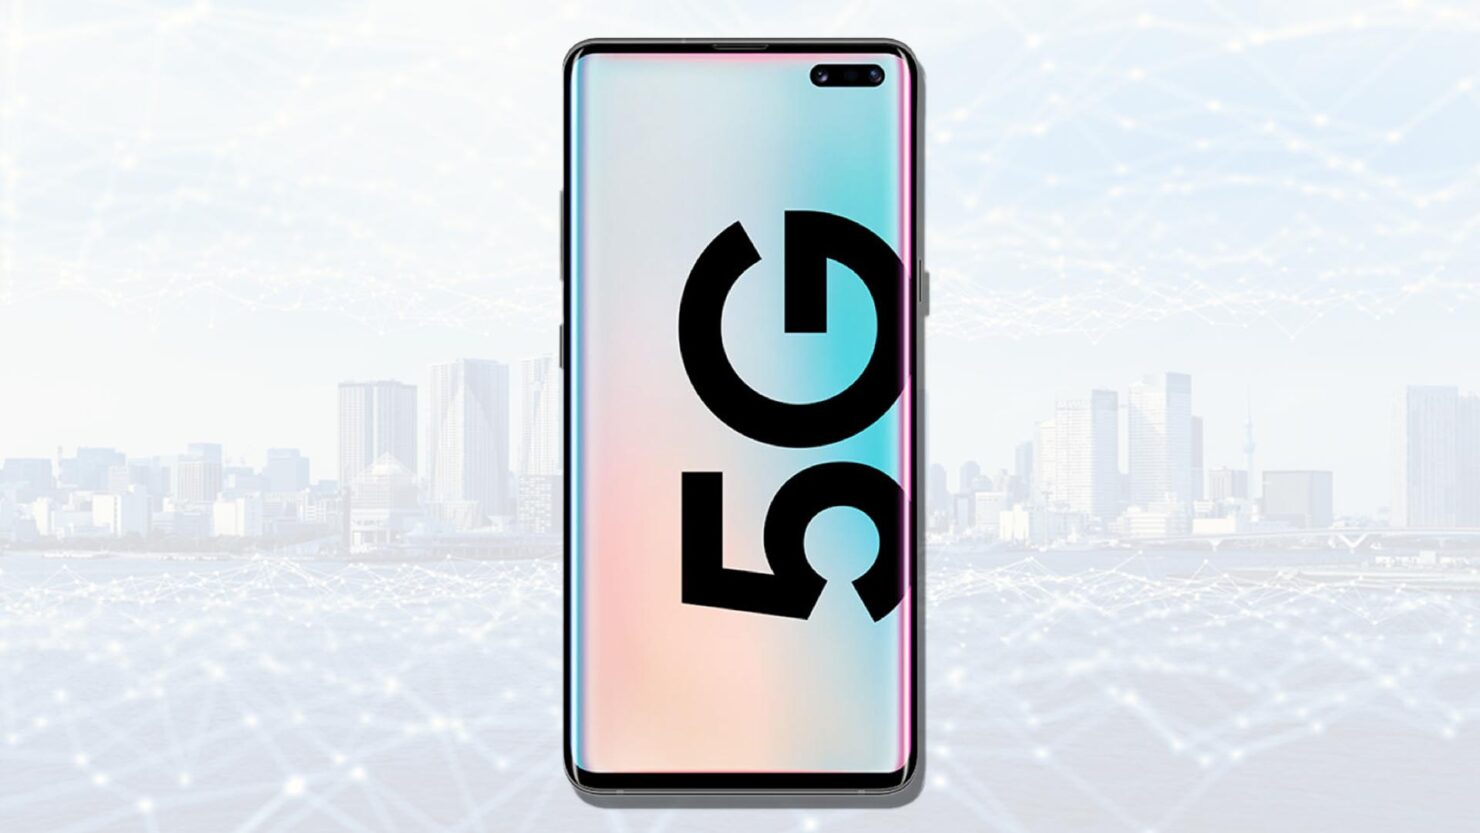 5G Smartphone Shipments for 2020 to Make up 15 Percent of the Global Market